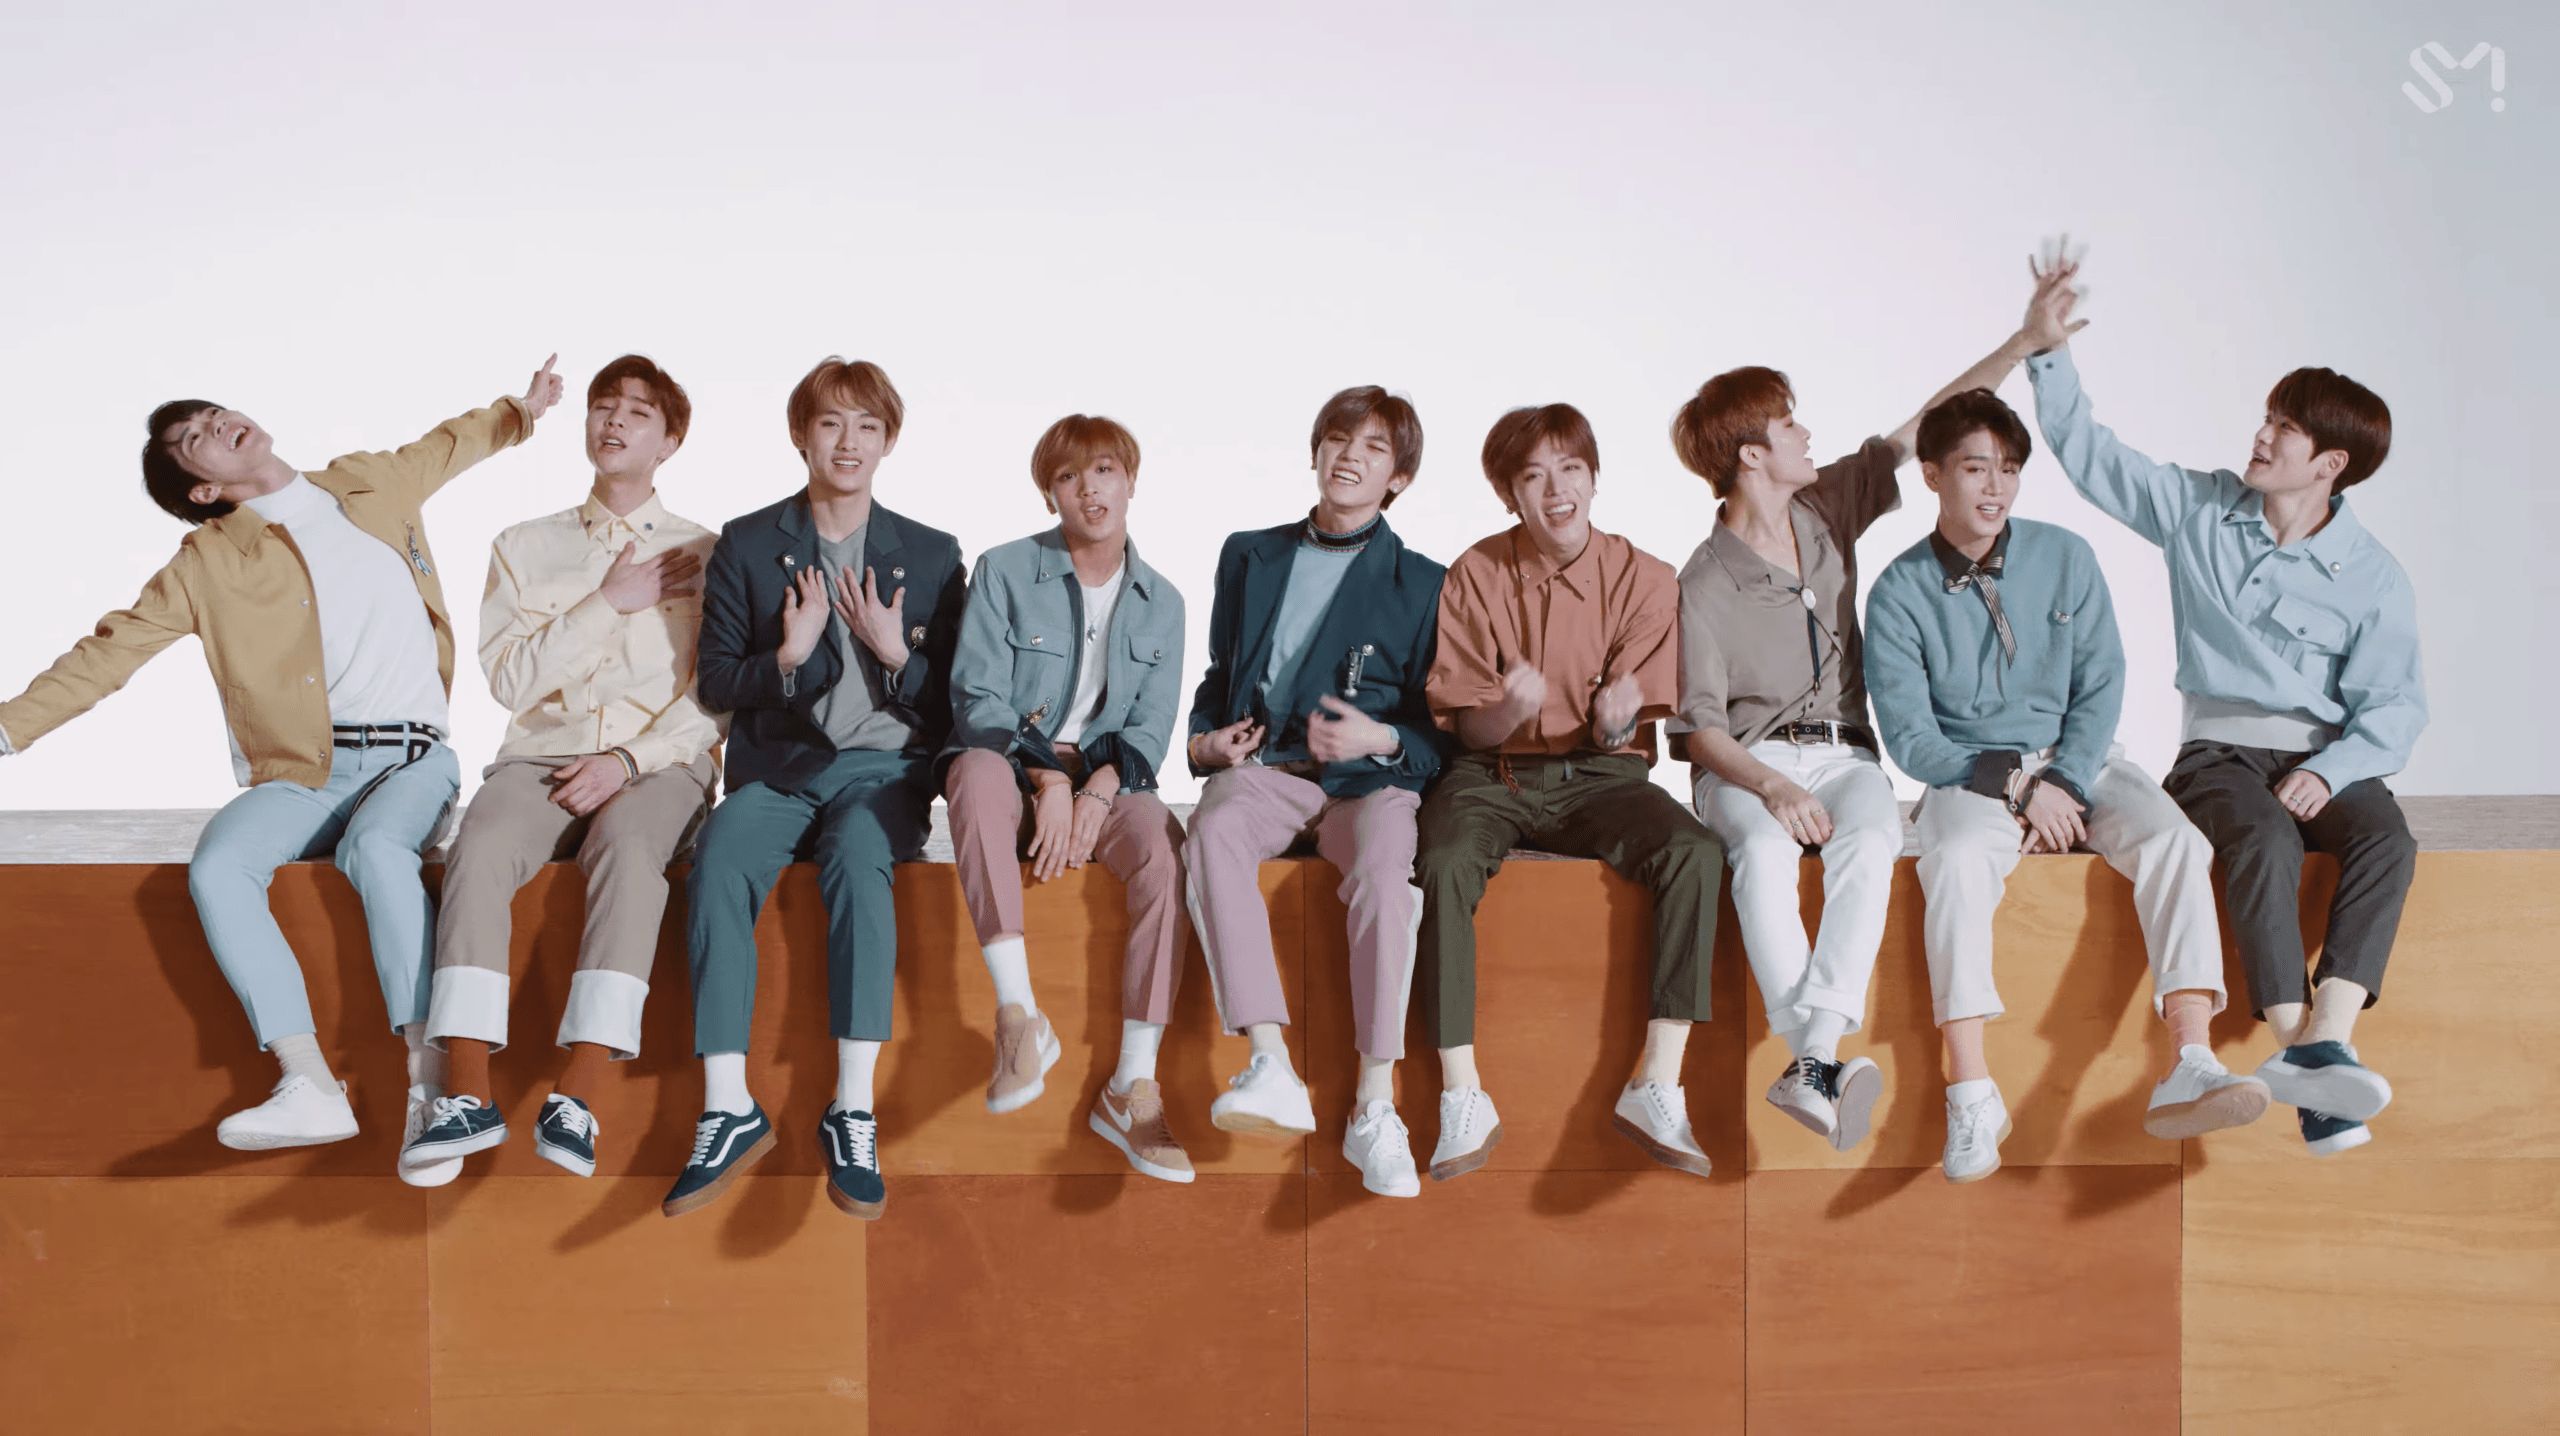 Nct 127 Computer Wallpapers Top Free Nct 127 Computer Backgrounds Wallpaperaccess